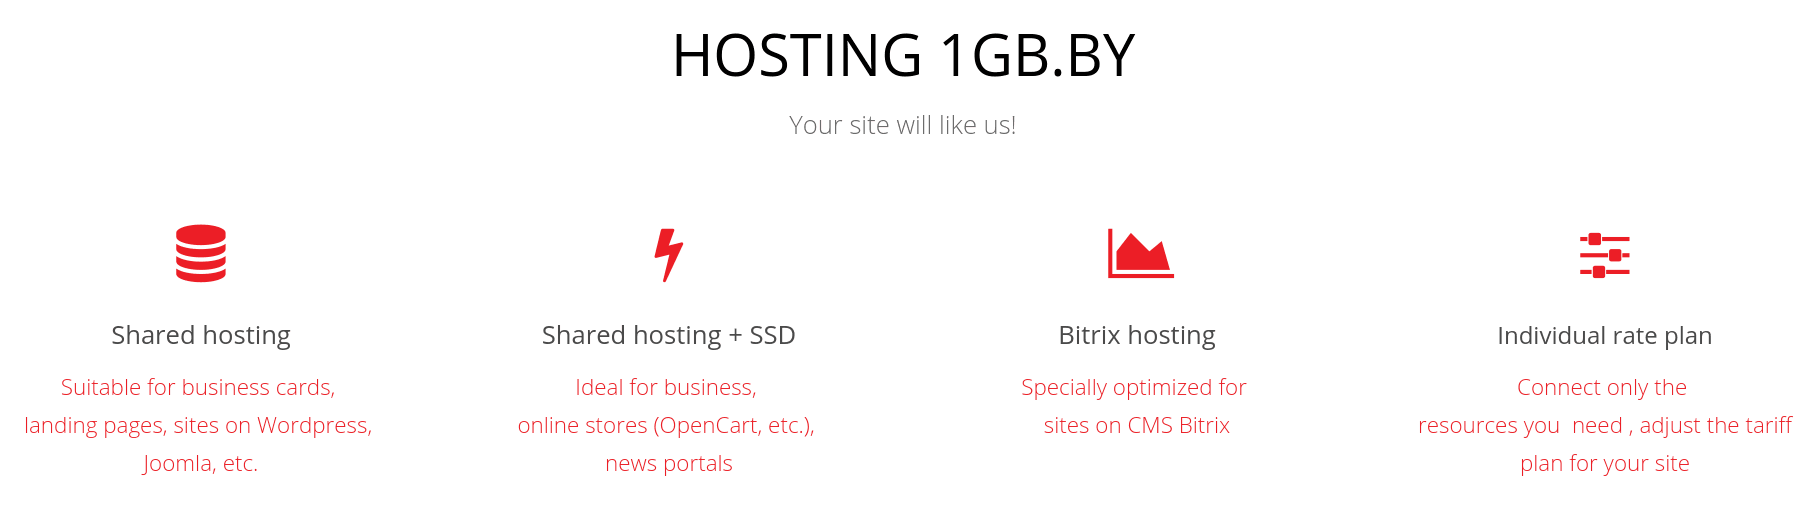 1GB.BY